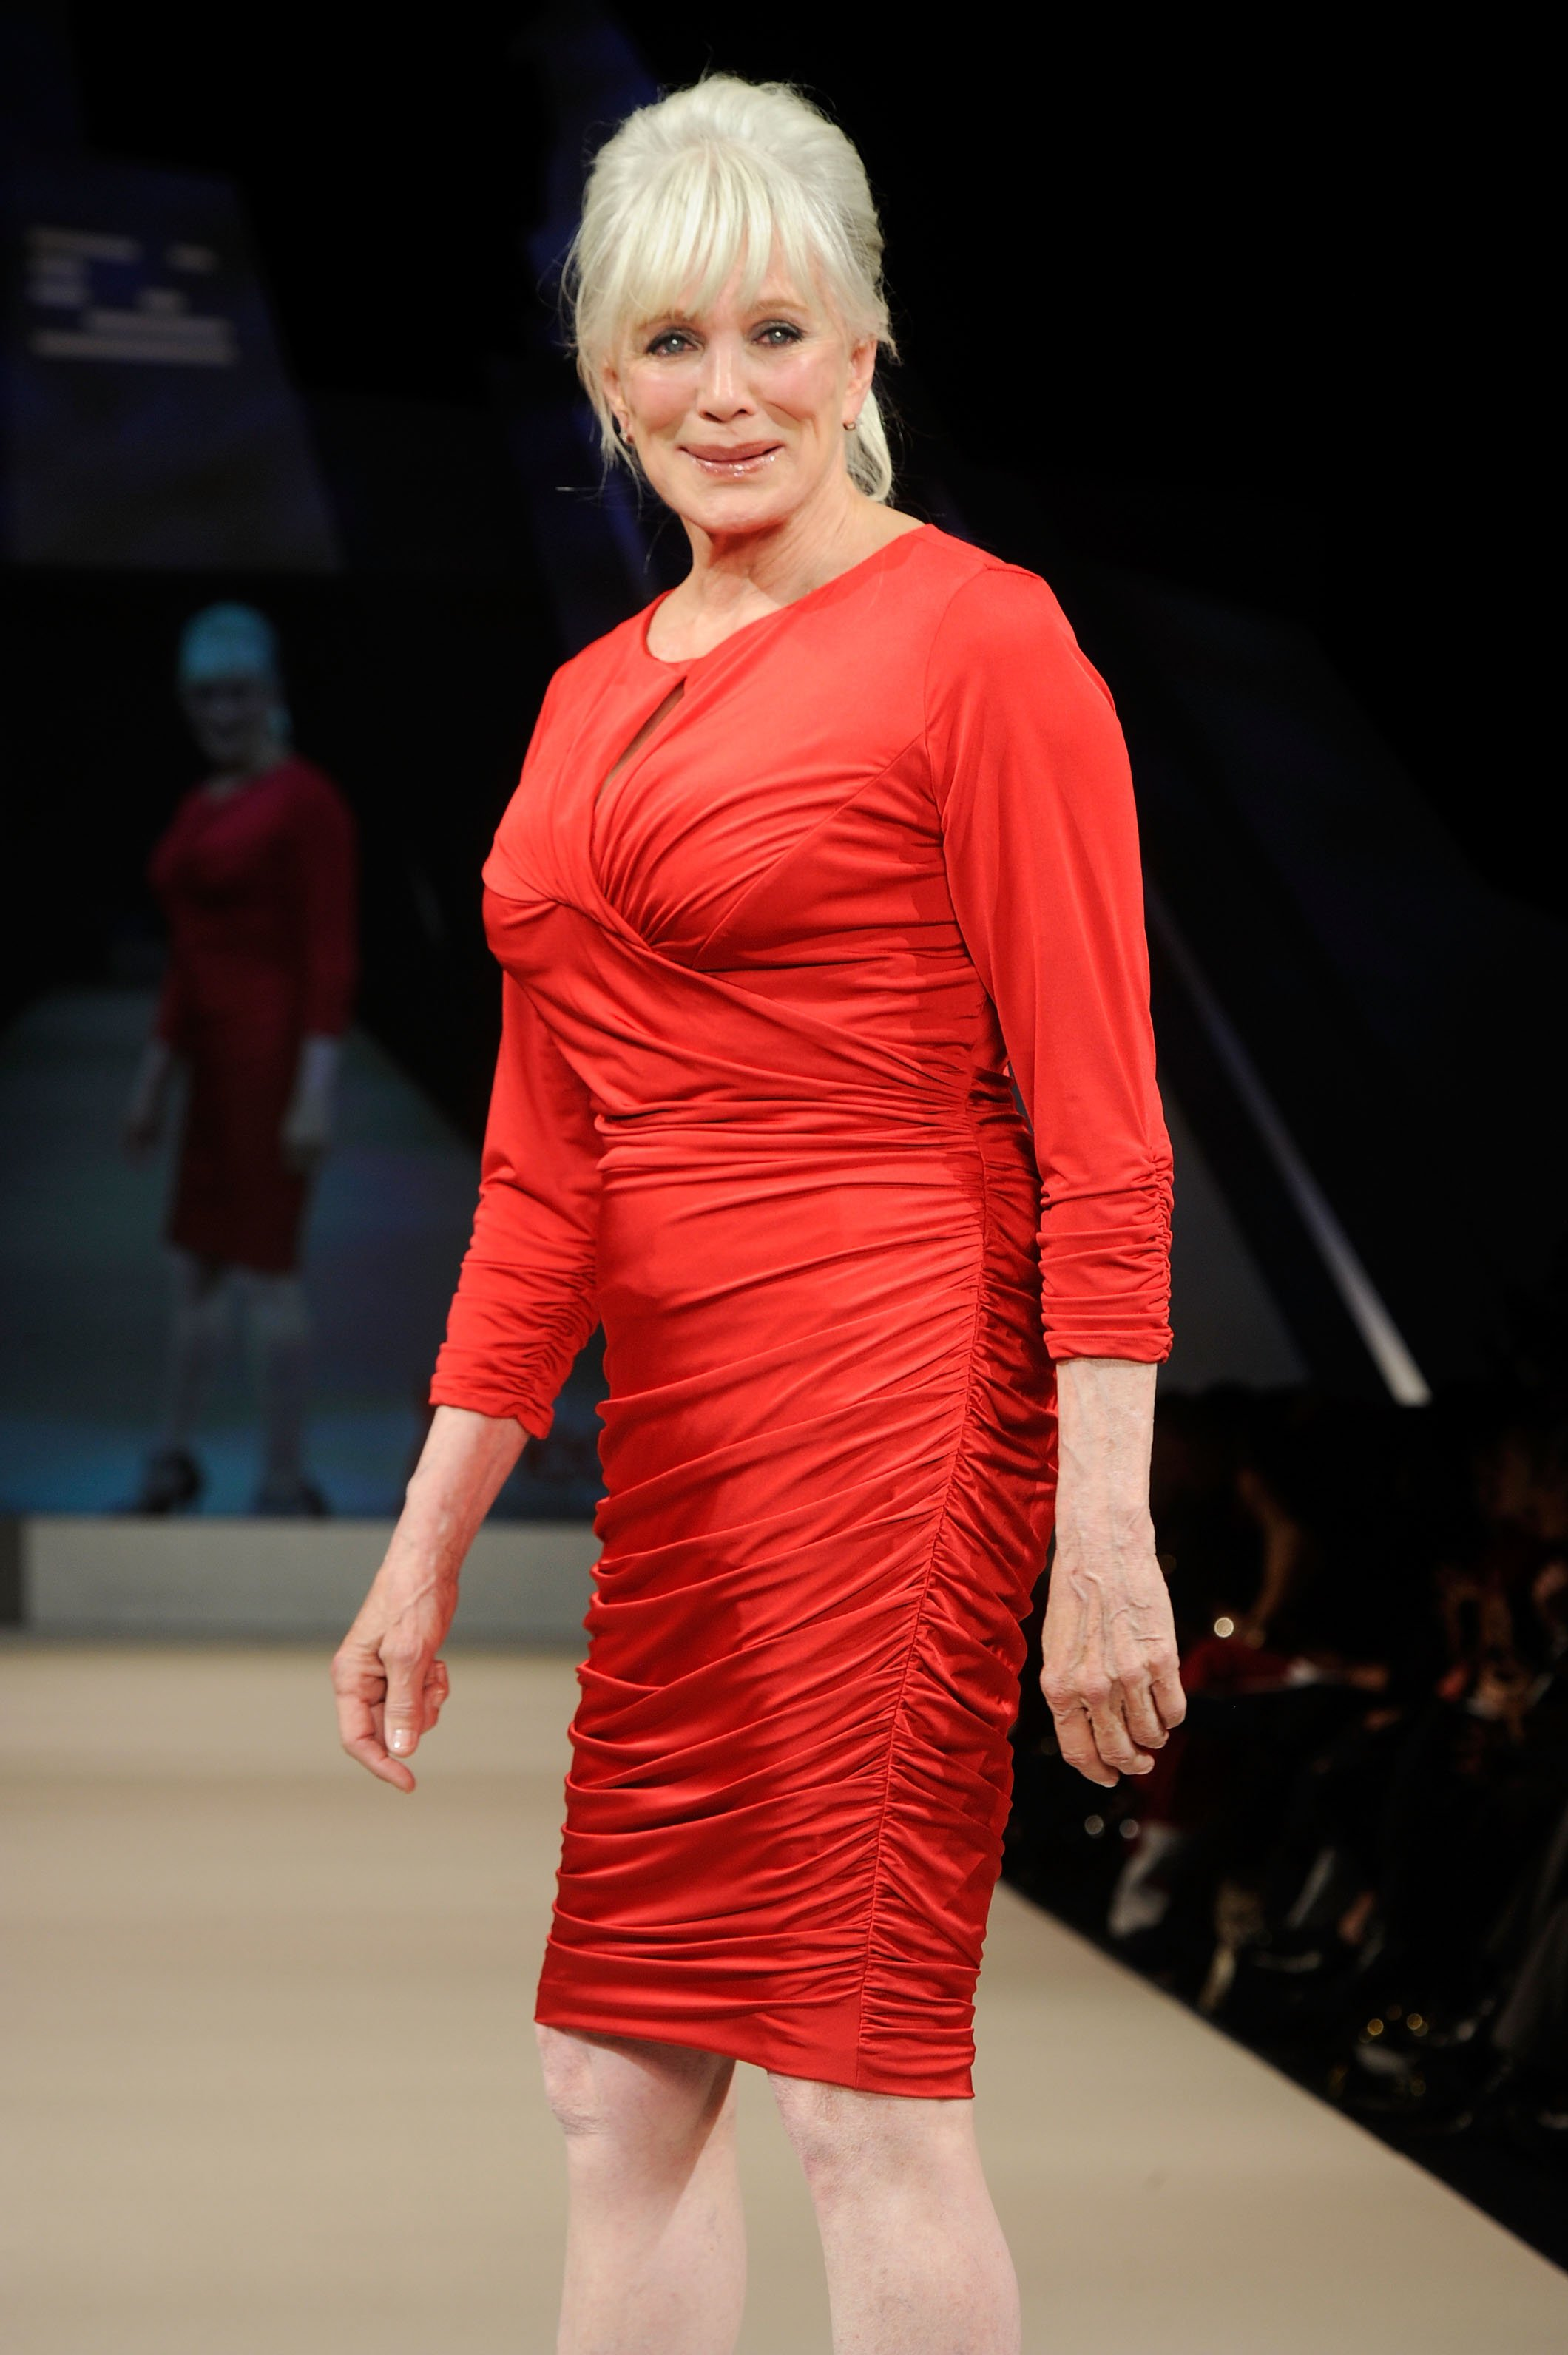 Linda Evans walks the runway at The Heart Truth's Red Dress Collection in New York City on February 8, 2012 | Photo: Getty IMages